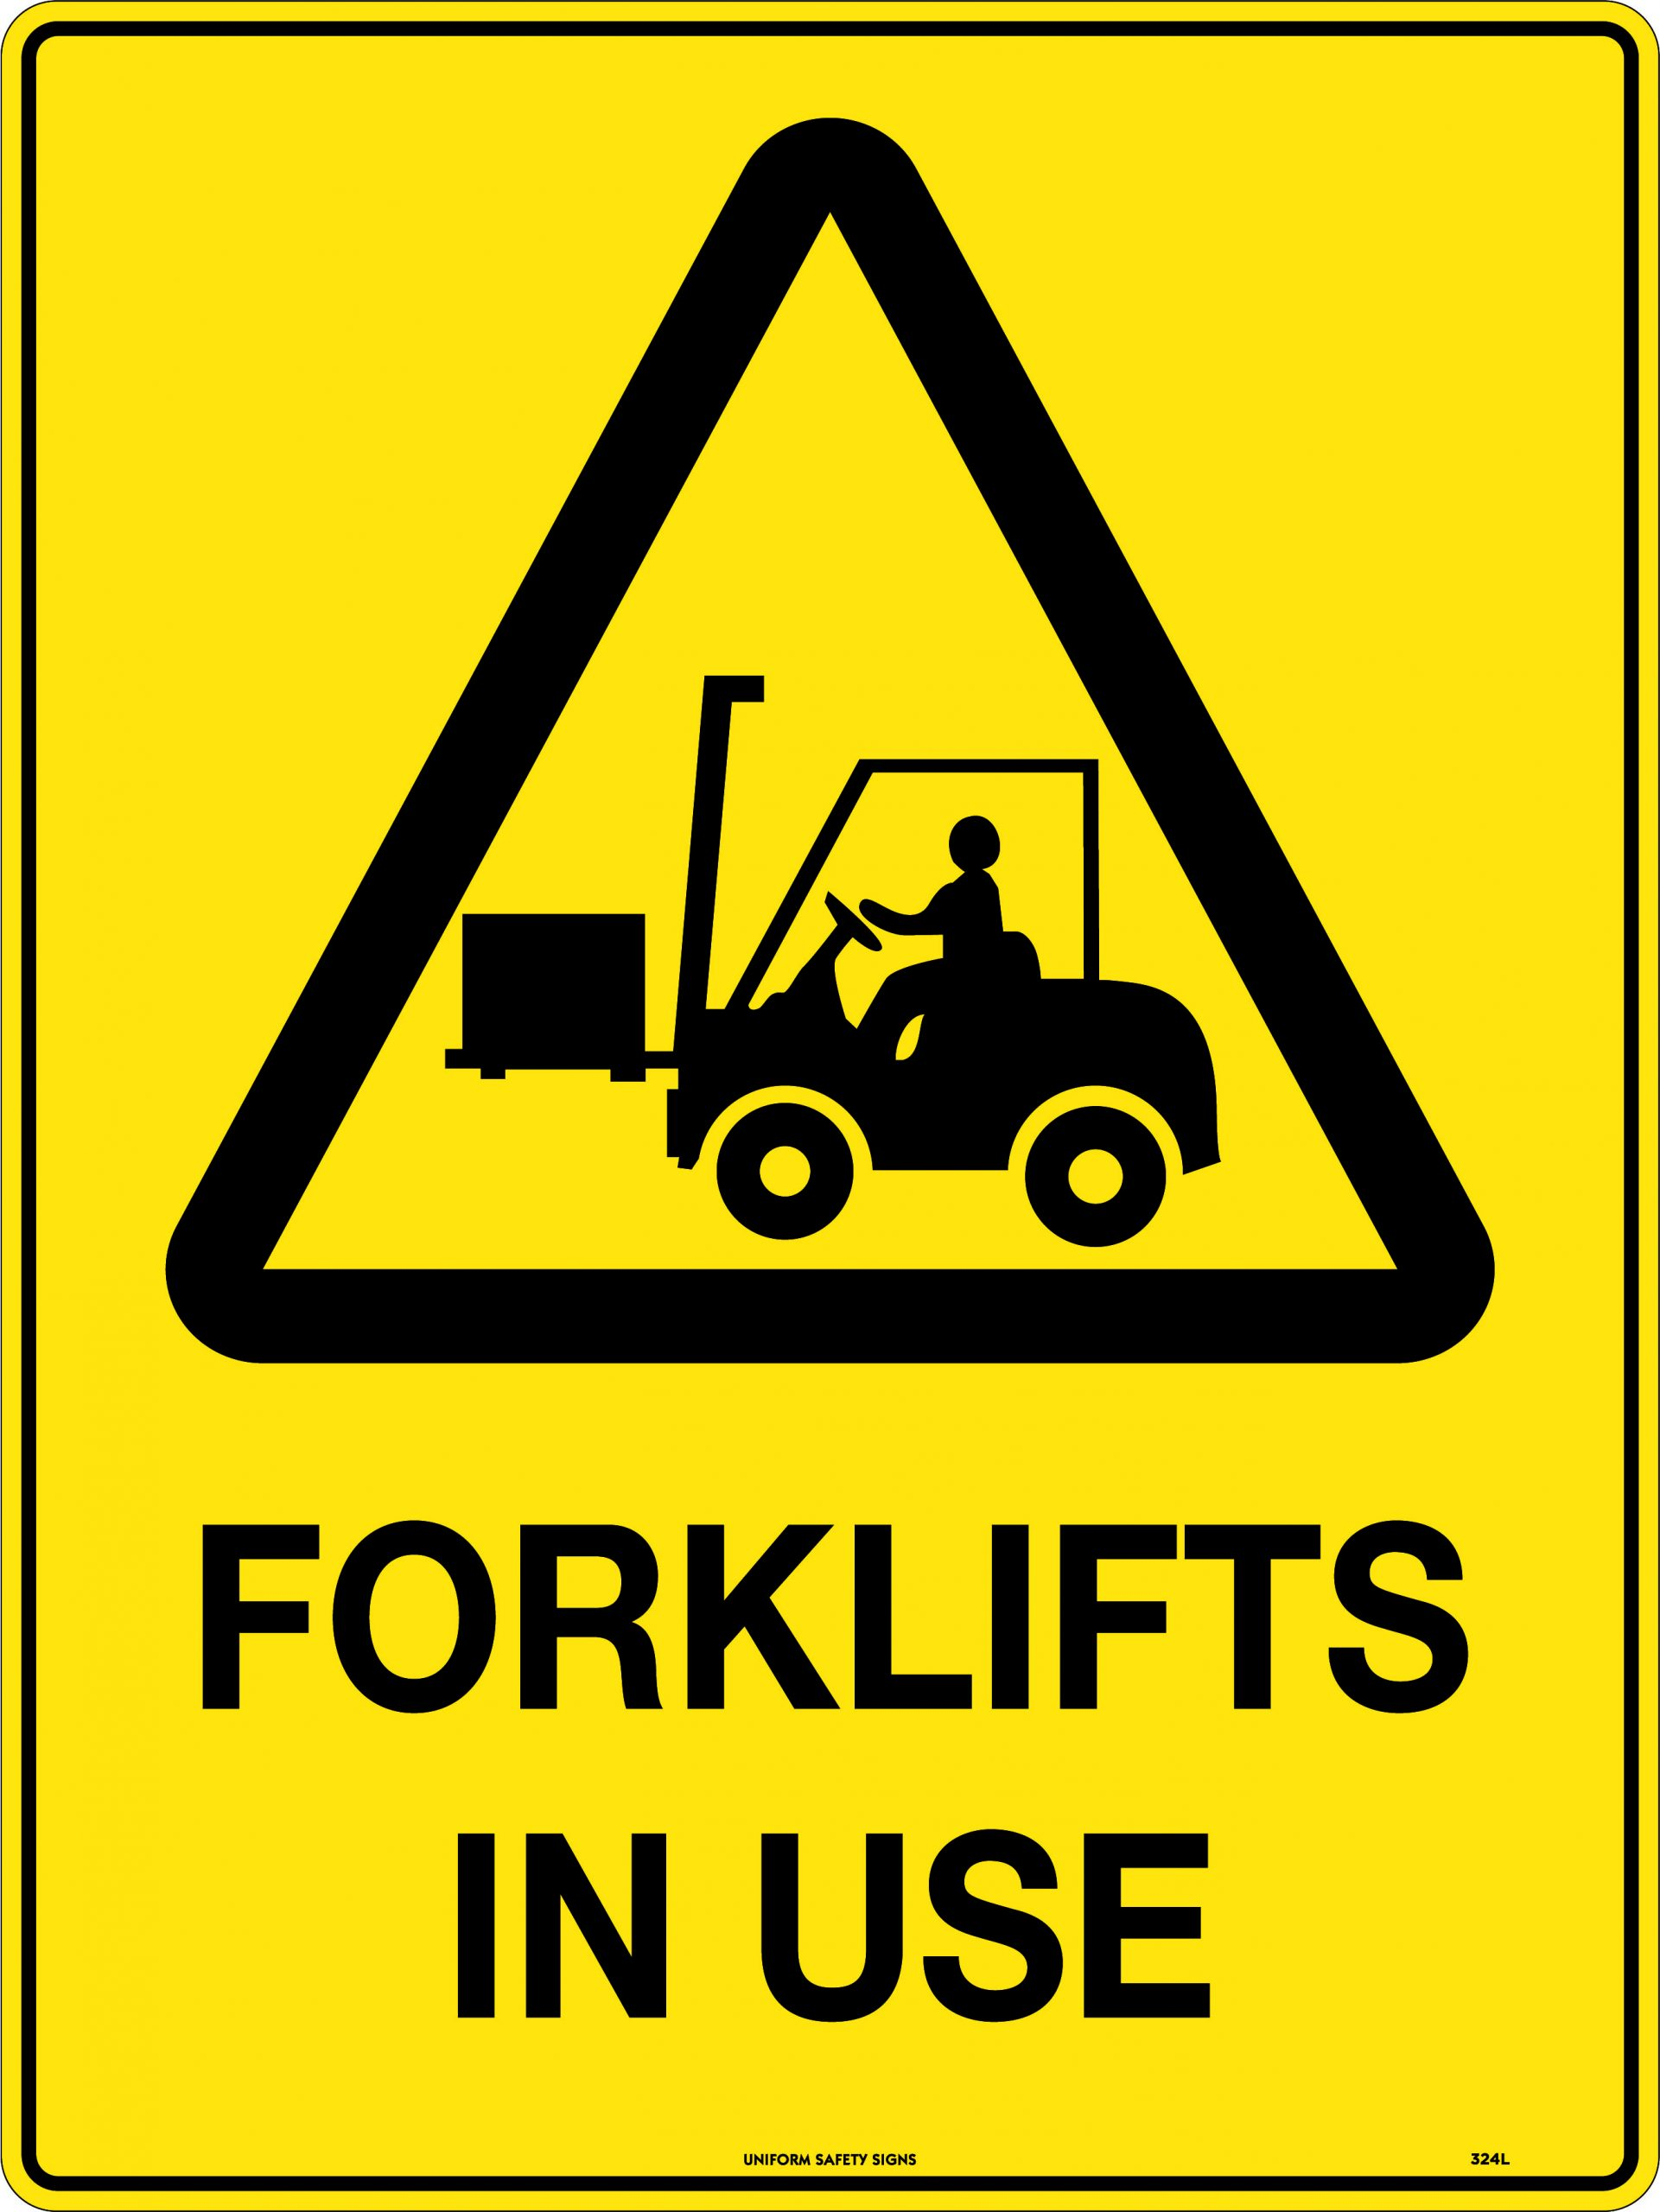 Caution Forklifts in Use | Uniform Safety Signs